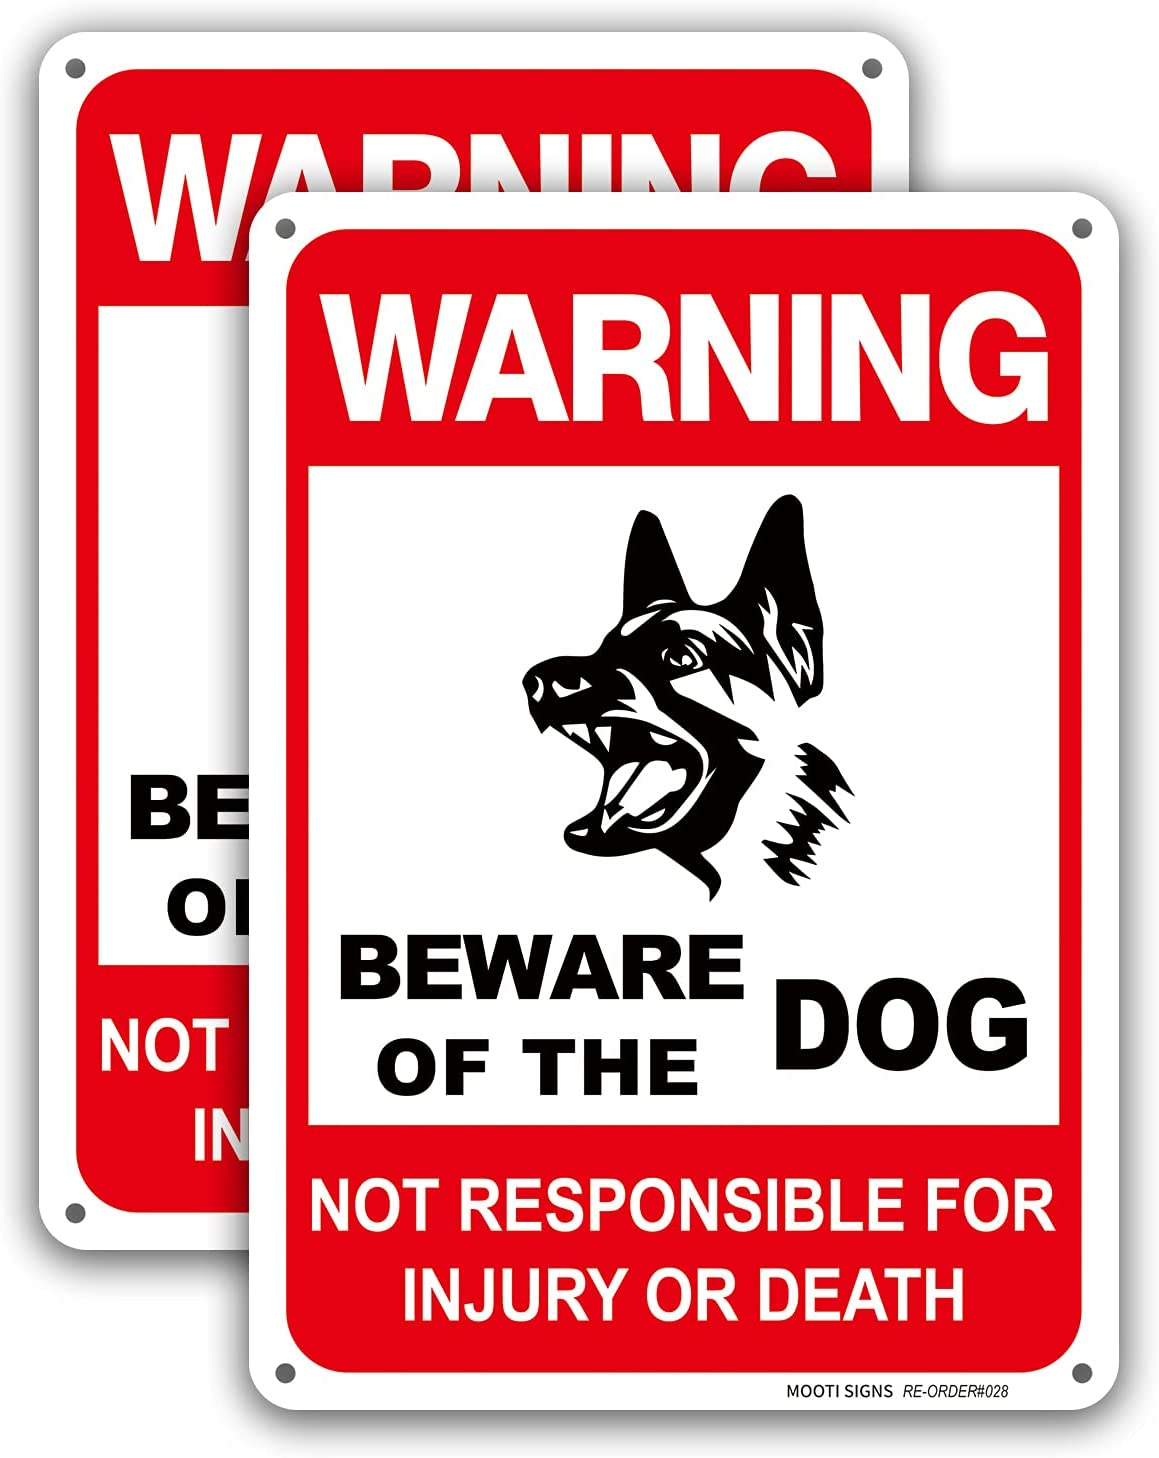 Dog Warning Signs Milwaukee Mall Beware of Aluminum Sign OFFicial shop Not The Re